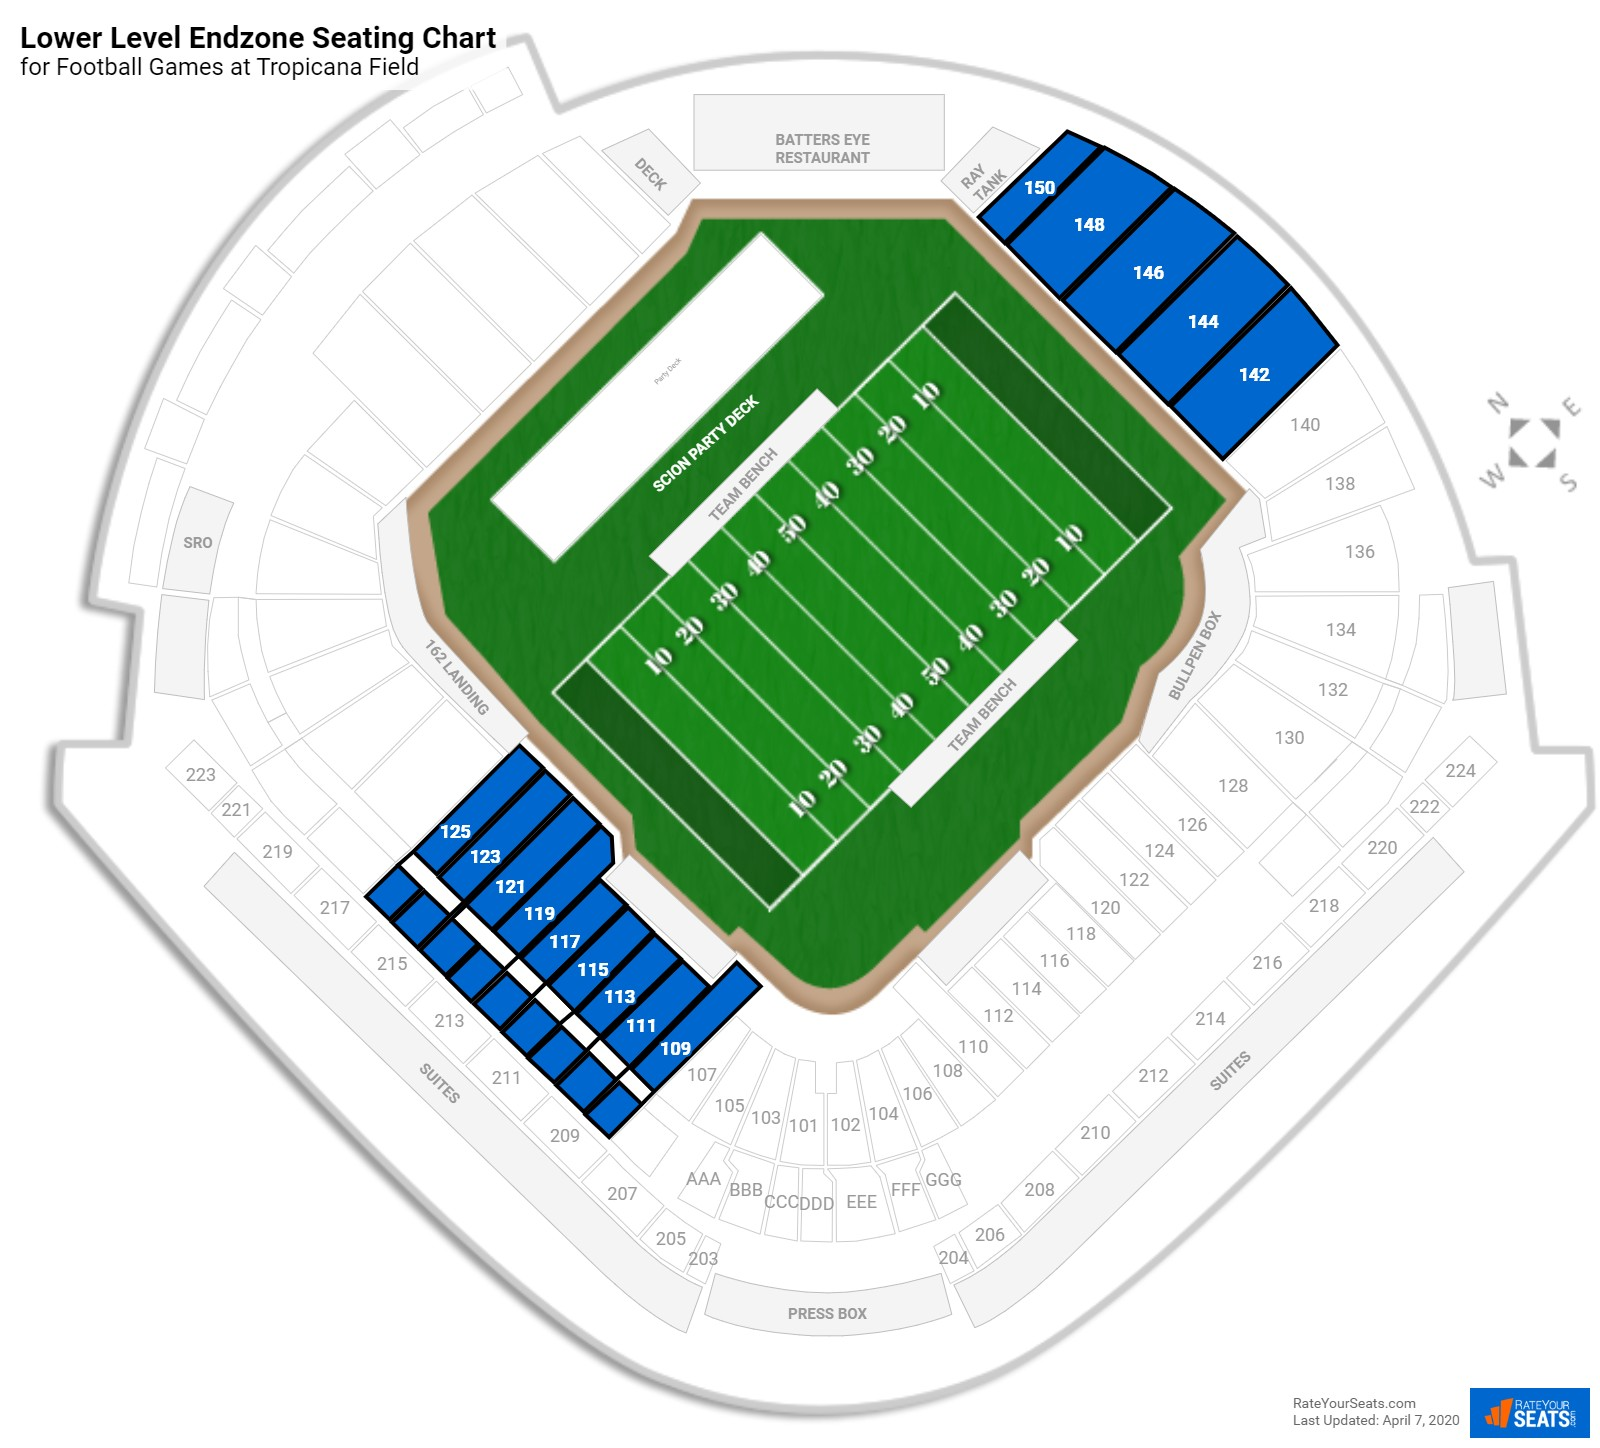 Tropicana Field Lower Level Endzone seating chart